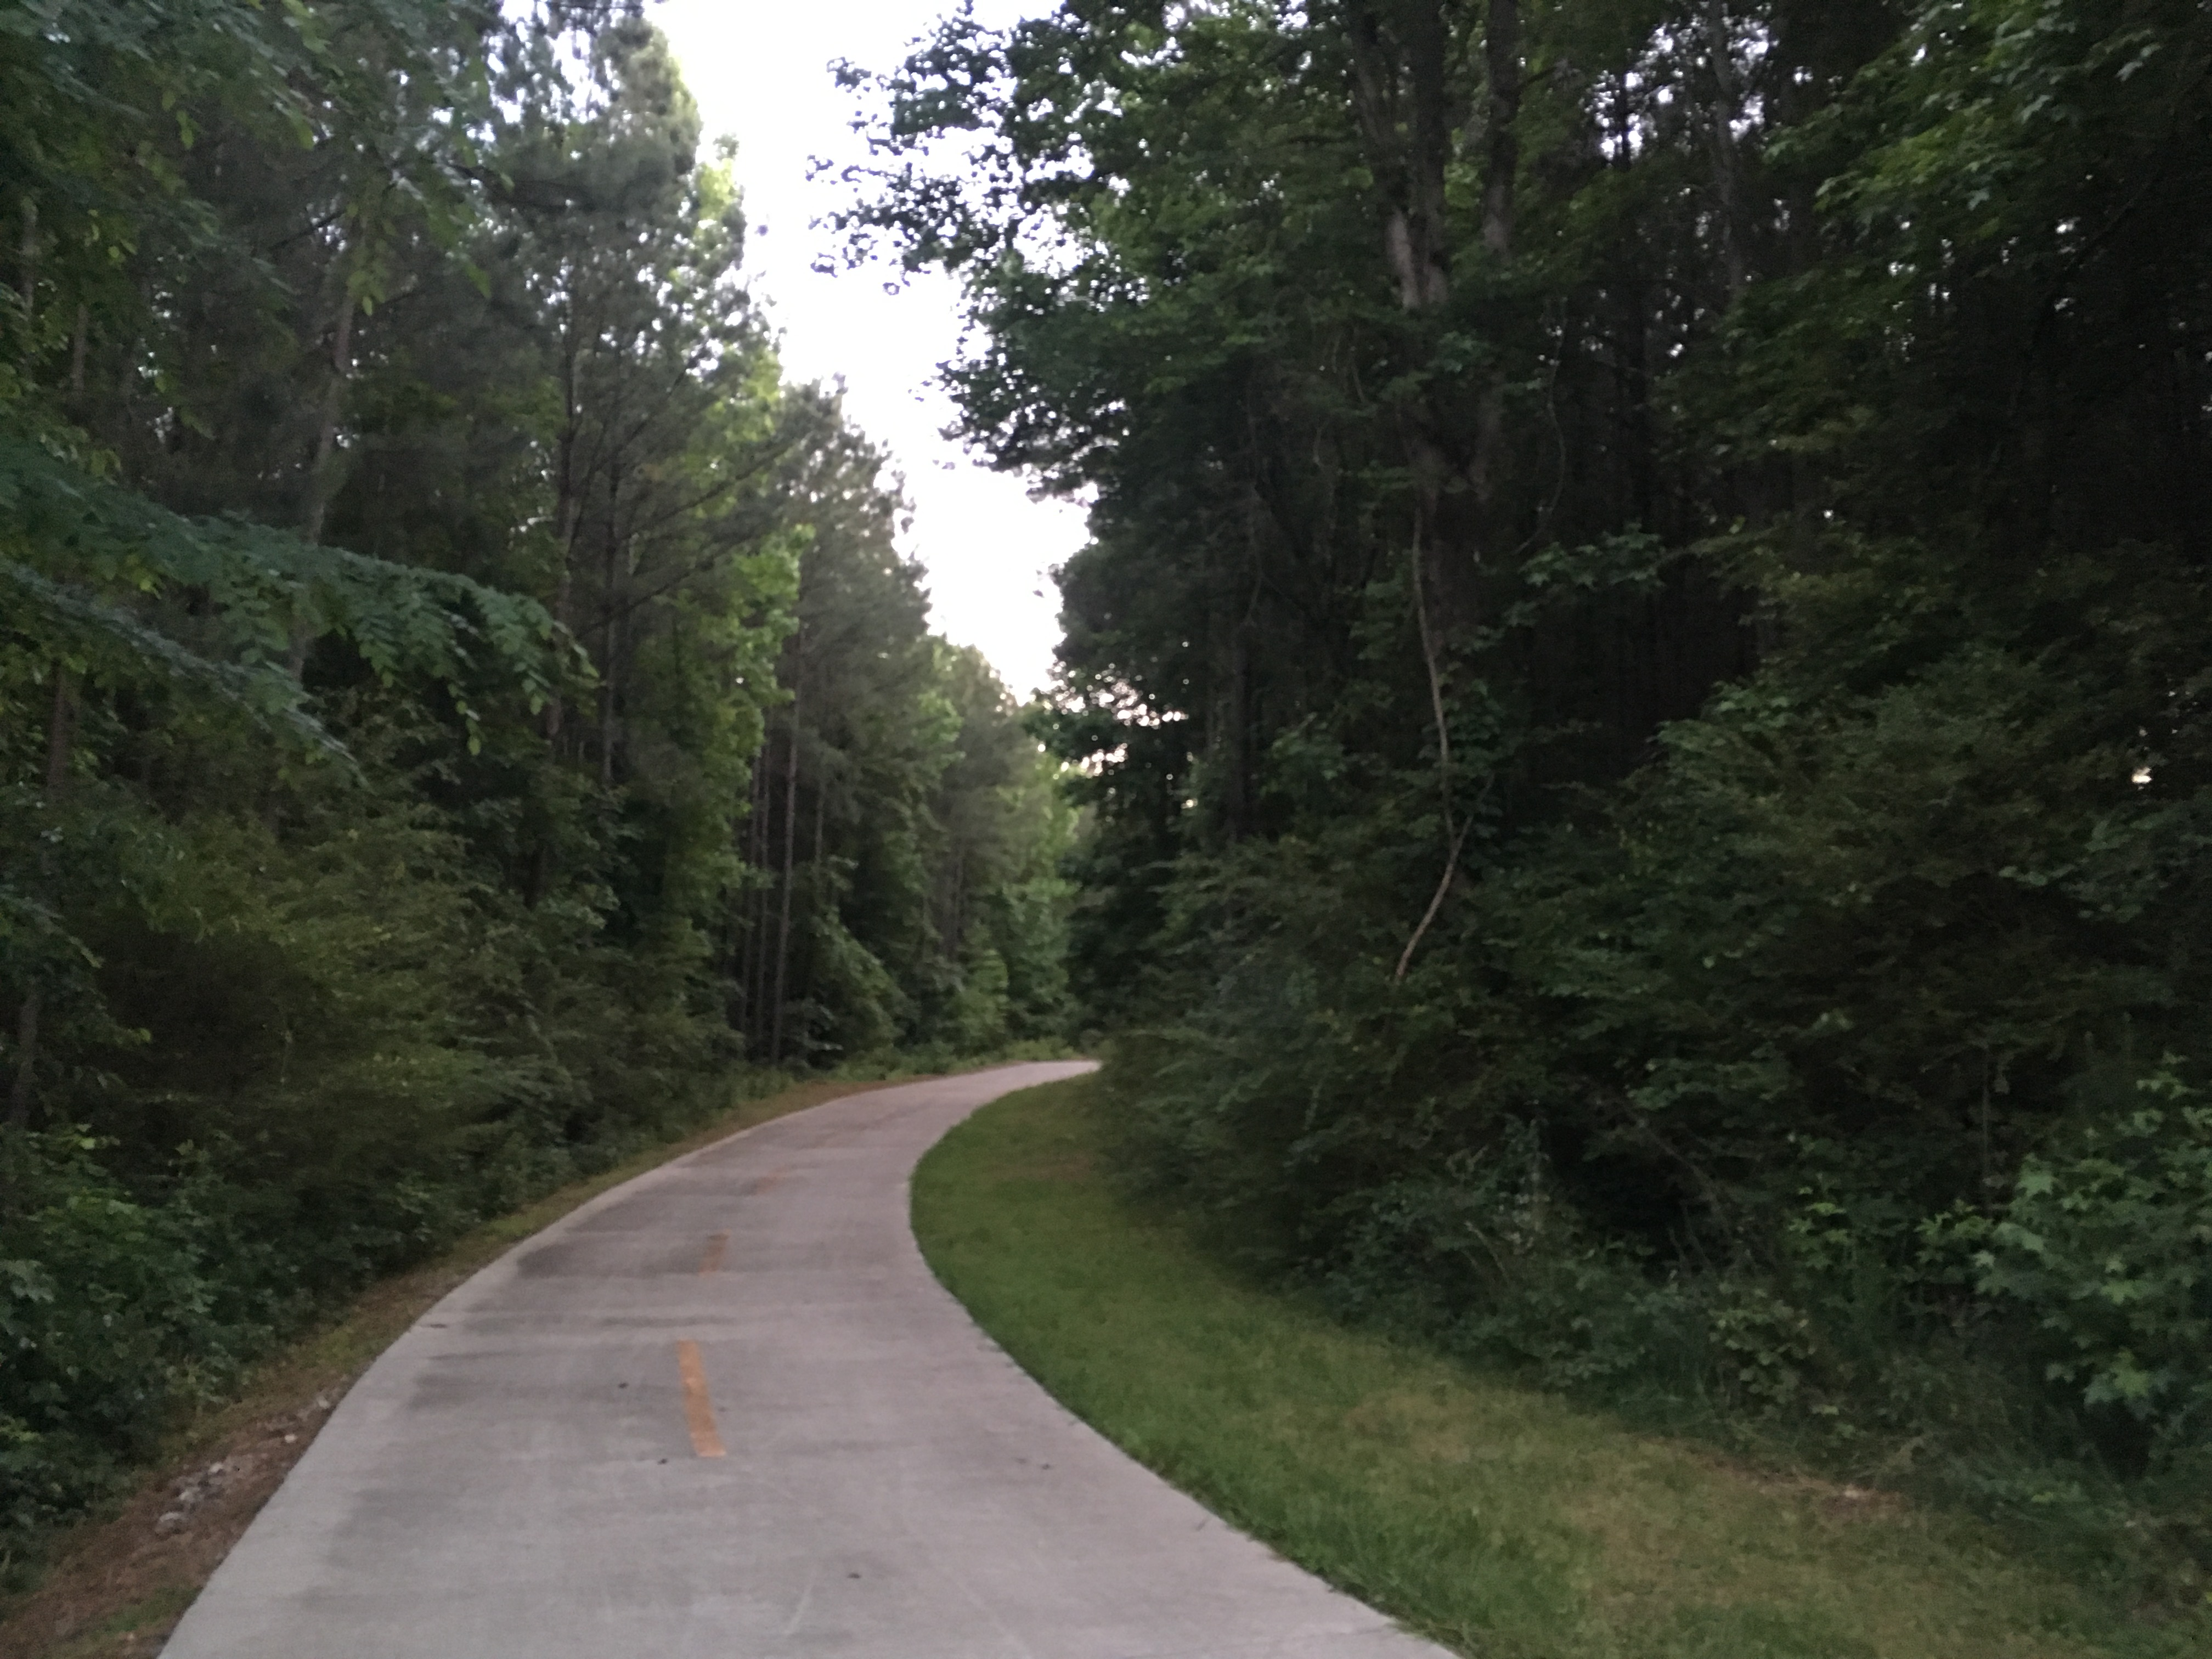 The Intrenchment Creek Trailhead is mainly wooded and quiet — some would rather see a park with more amenities, if the county will pay for them. Credit: Maggie Lee